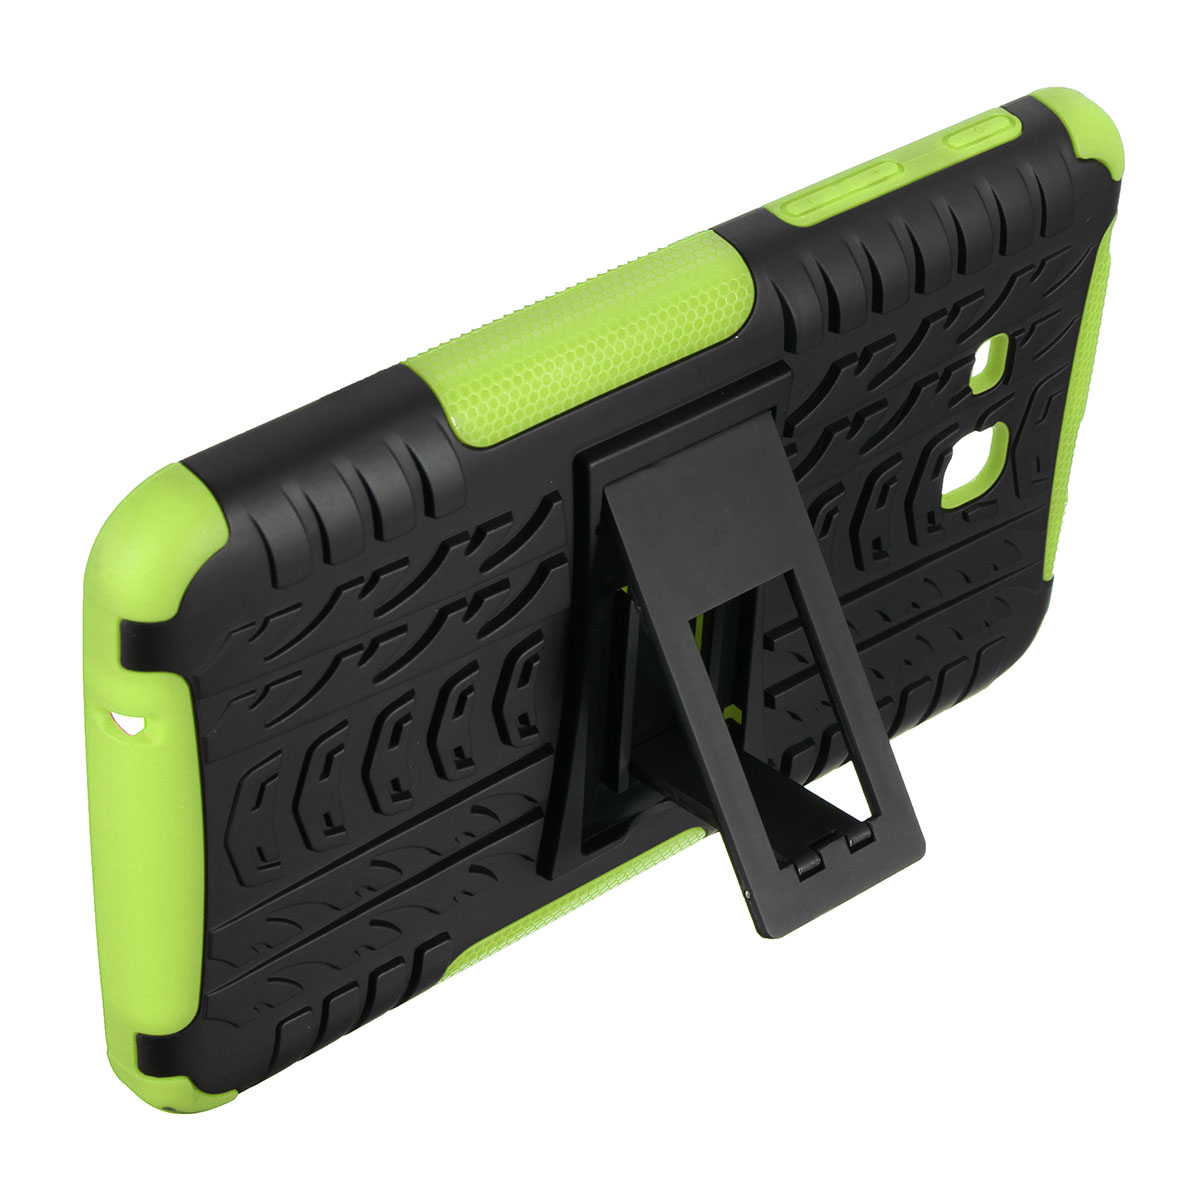 Shockproof TPU PC Hybrid Kickstand Holder Case Cover For Samsung Galaxy Tab E Lite 7.0 T113